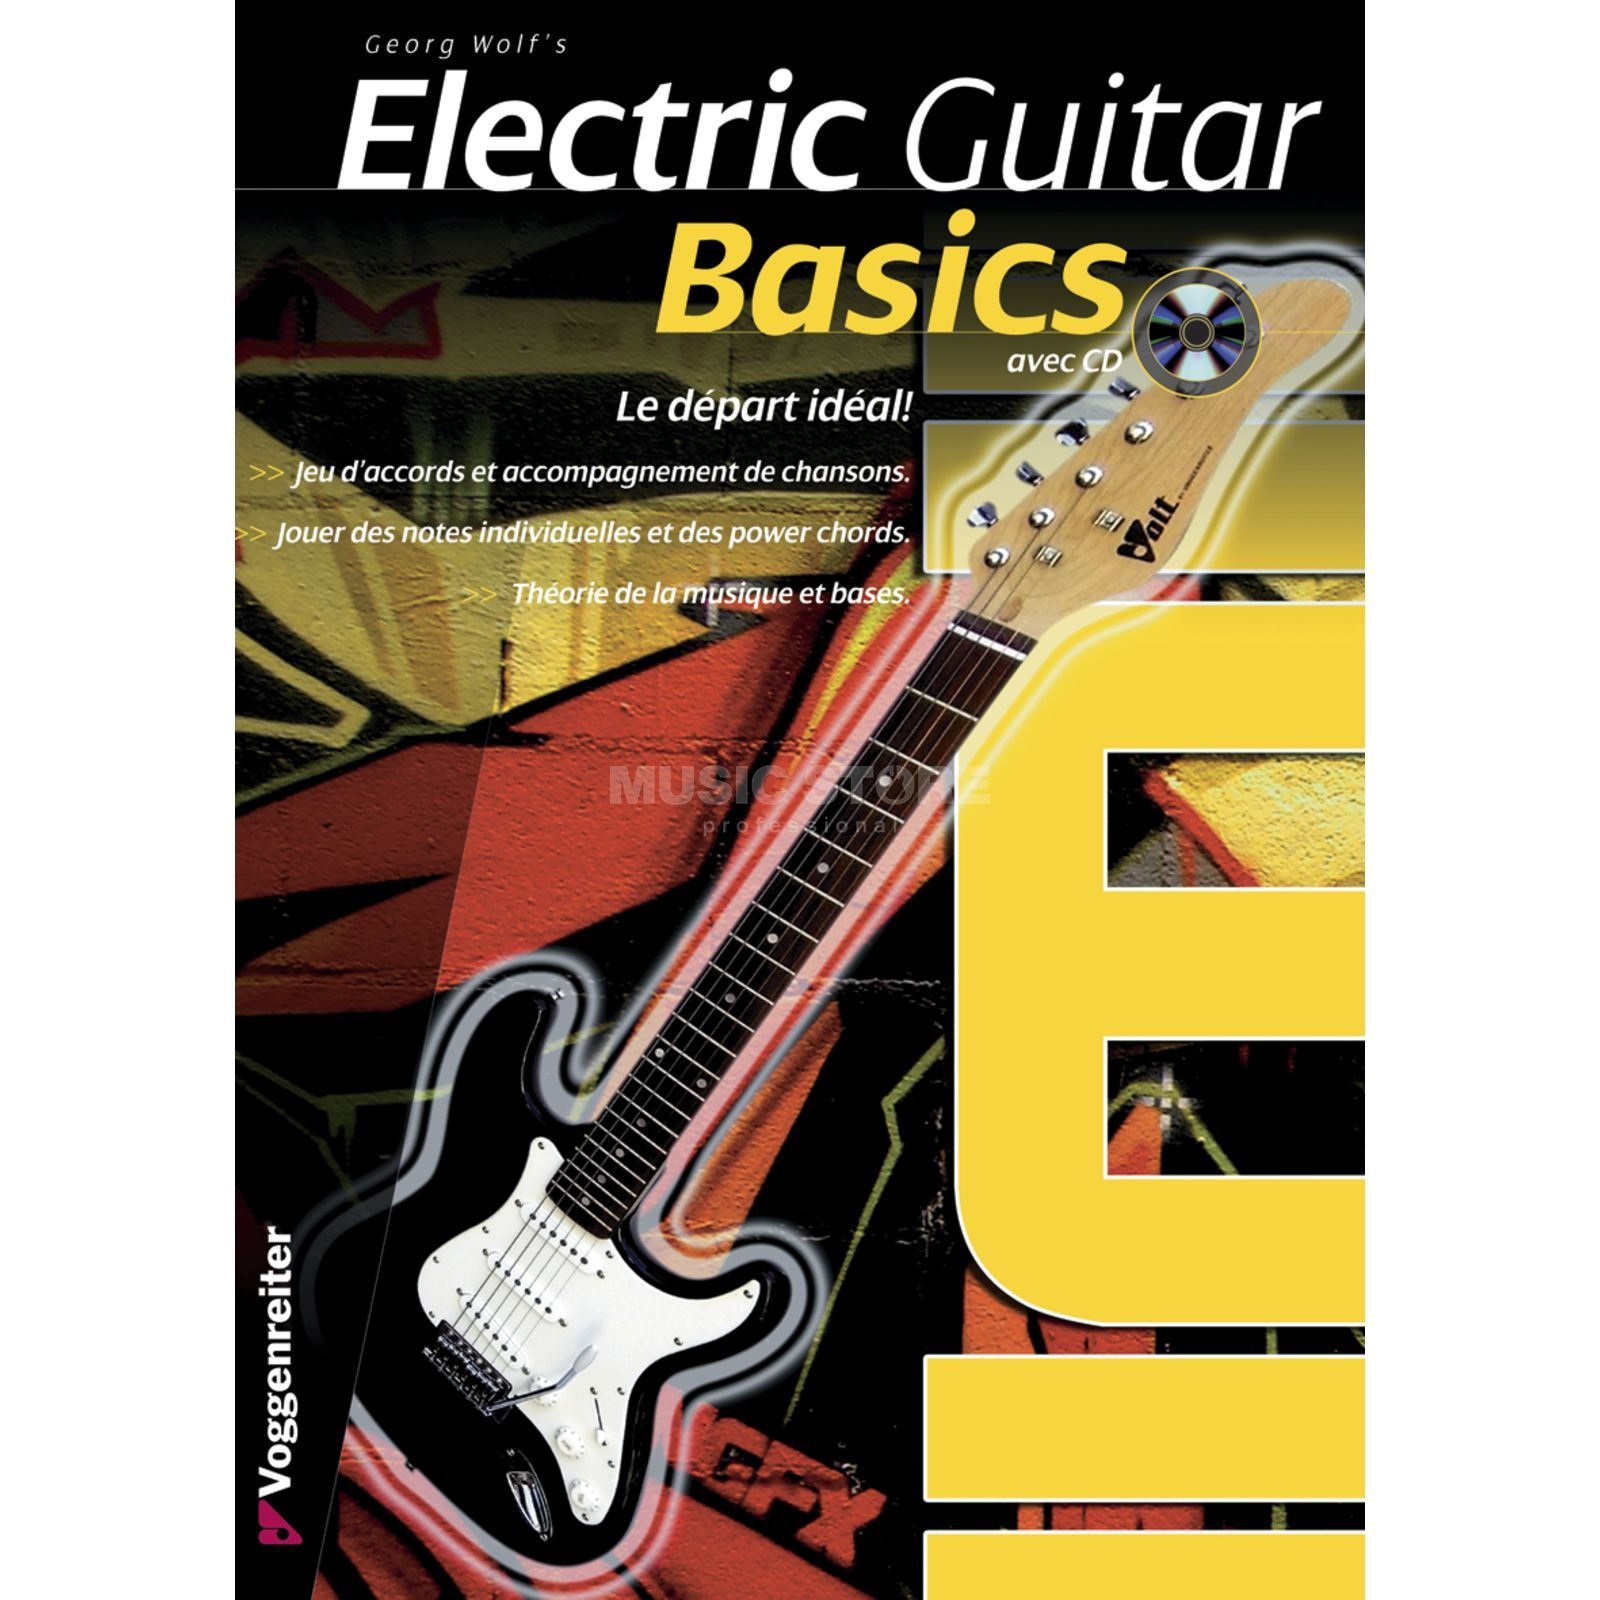 Voggenreiter Electr.Guitar Basics FRANCAIS Georg Wolf/ manuel/ incl. CD Product Image